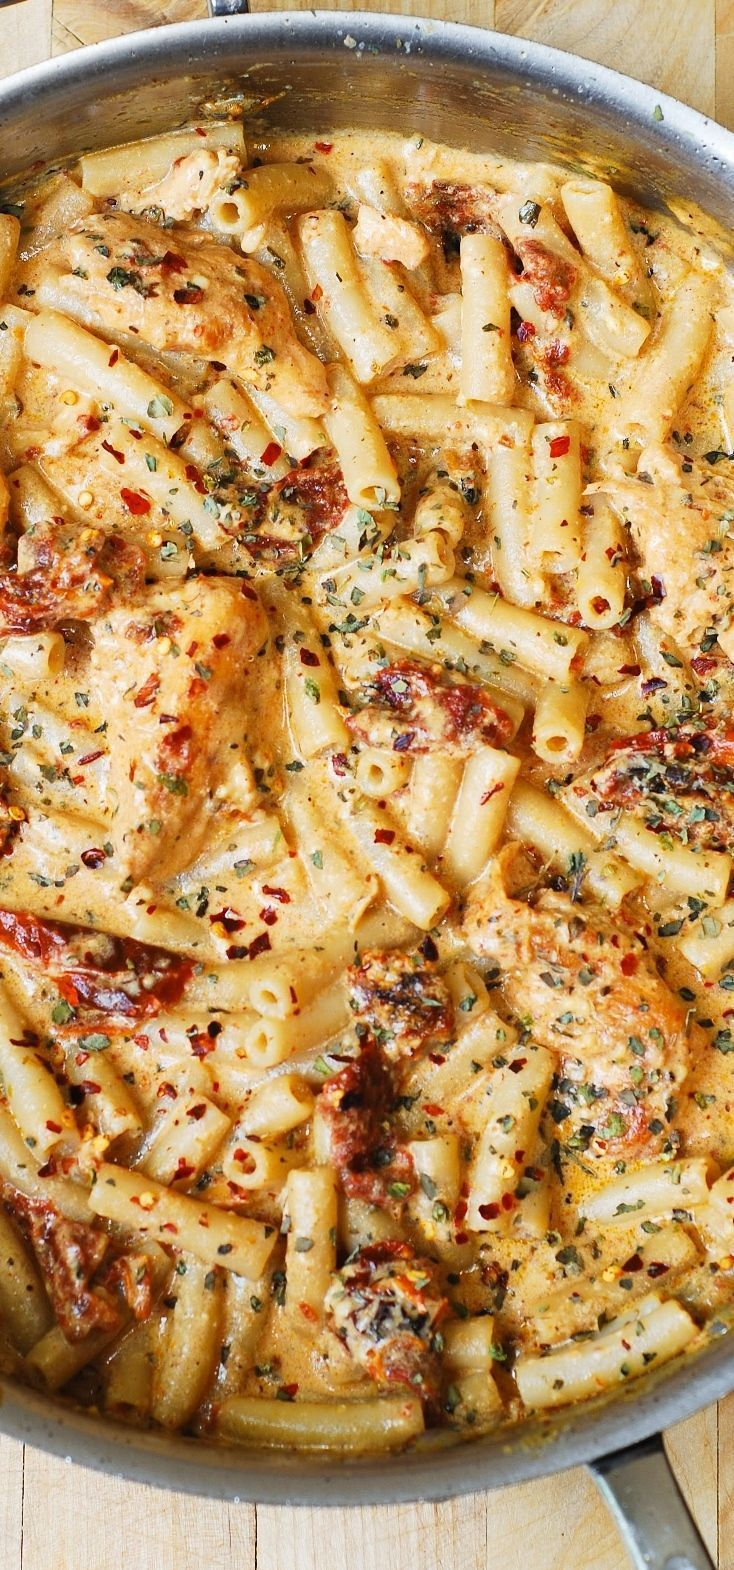 Chicken Mozzarella Pasta with Sun-Dried Tomatoes.Chicken breast tenderloins sautéed with sun-dried tomatoes and penne pasta in a creamy mozzarella cheese sauce seasoned with basil, crushed red pepper flakes. If you love pasta, if you love Italian food – you'll LOVE this recipe!